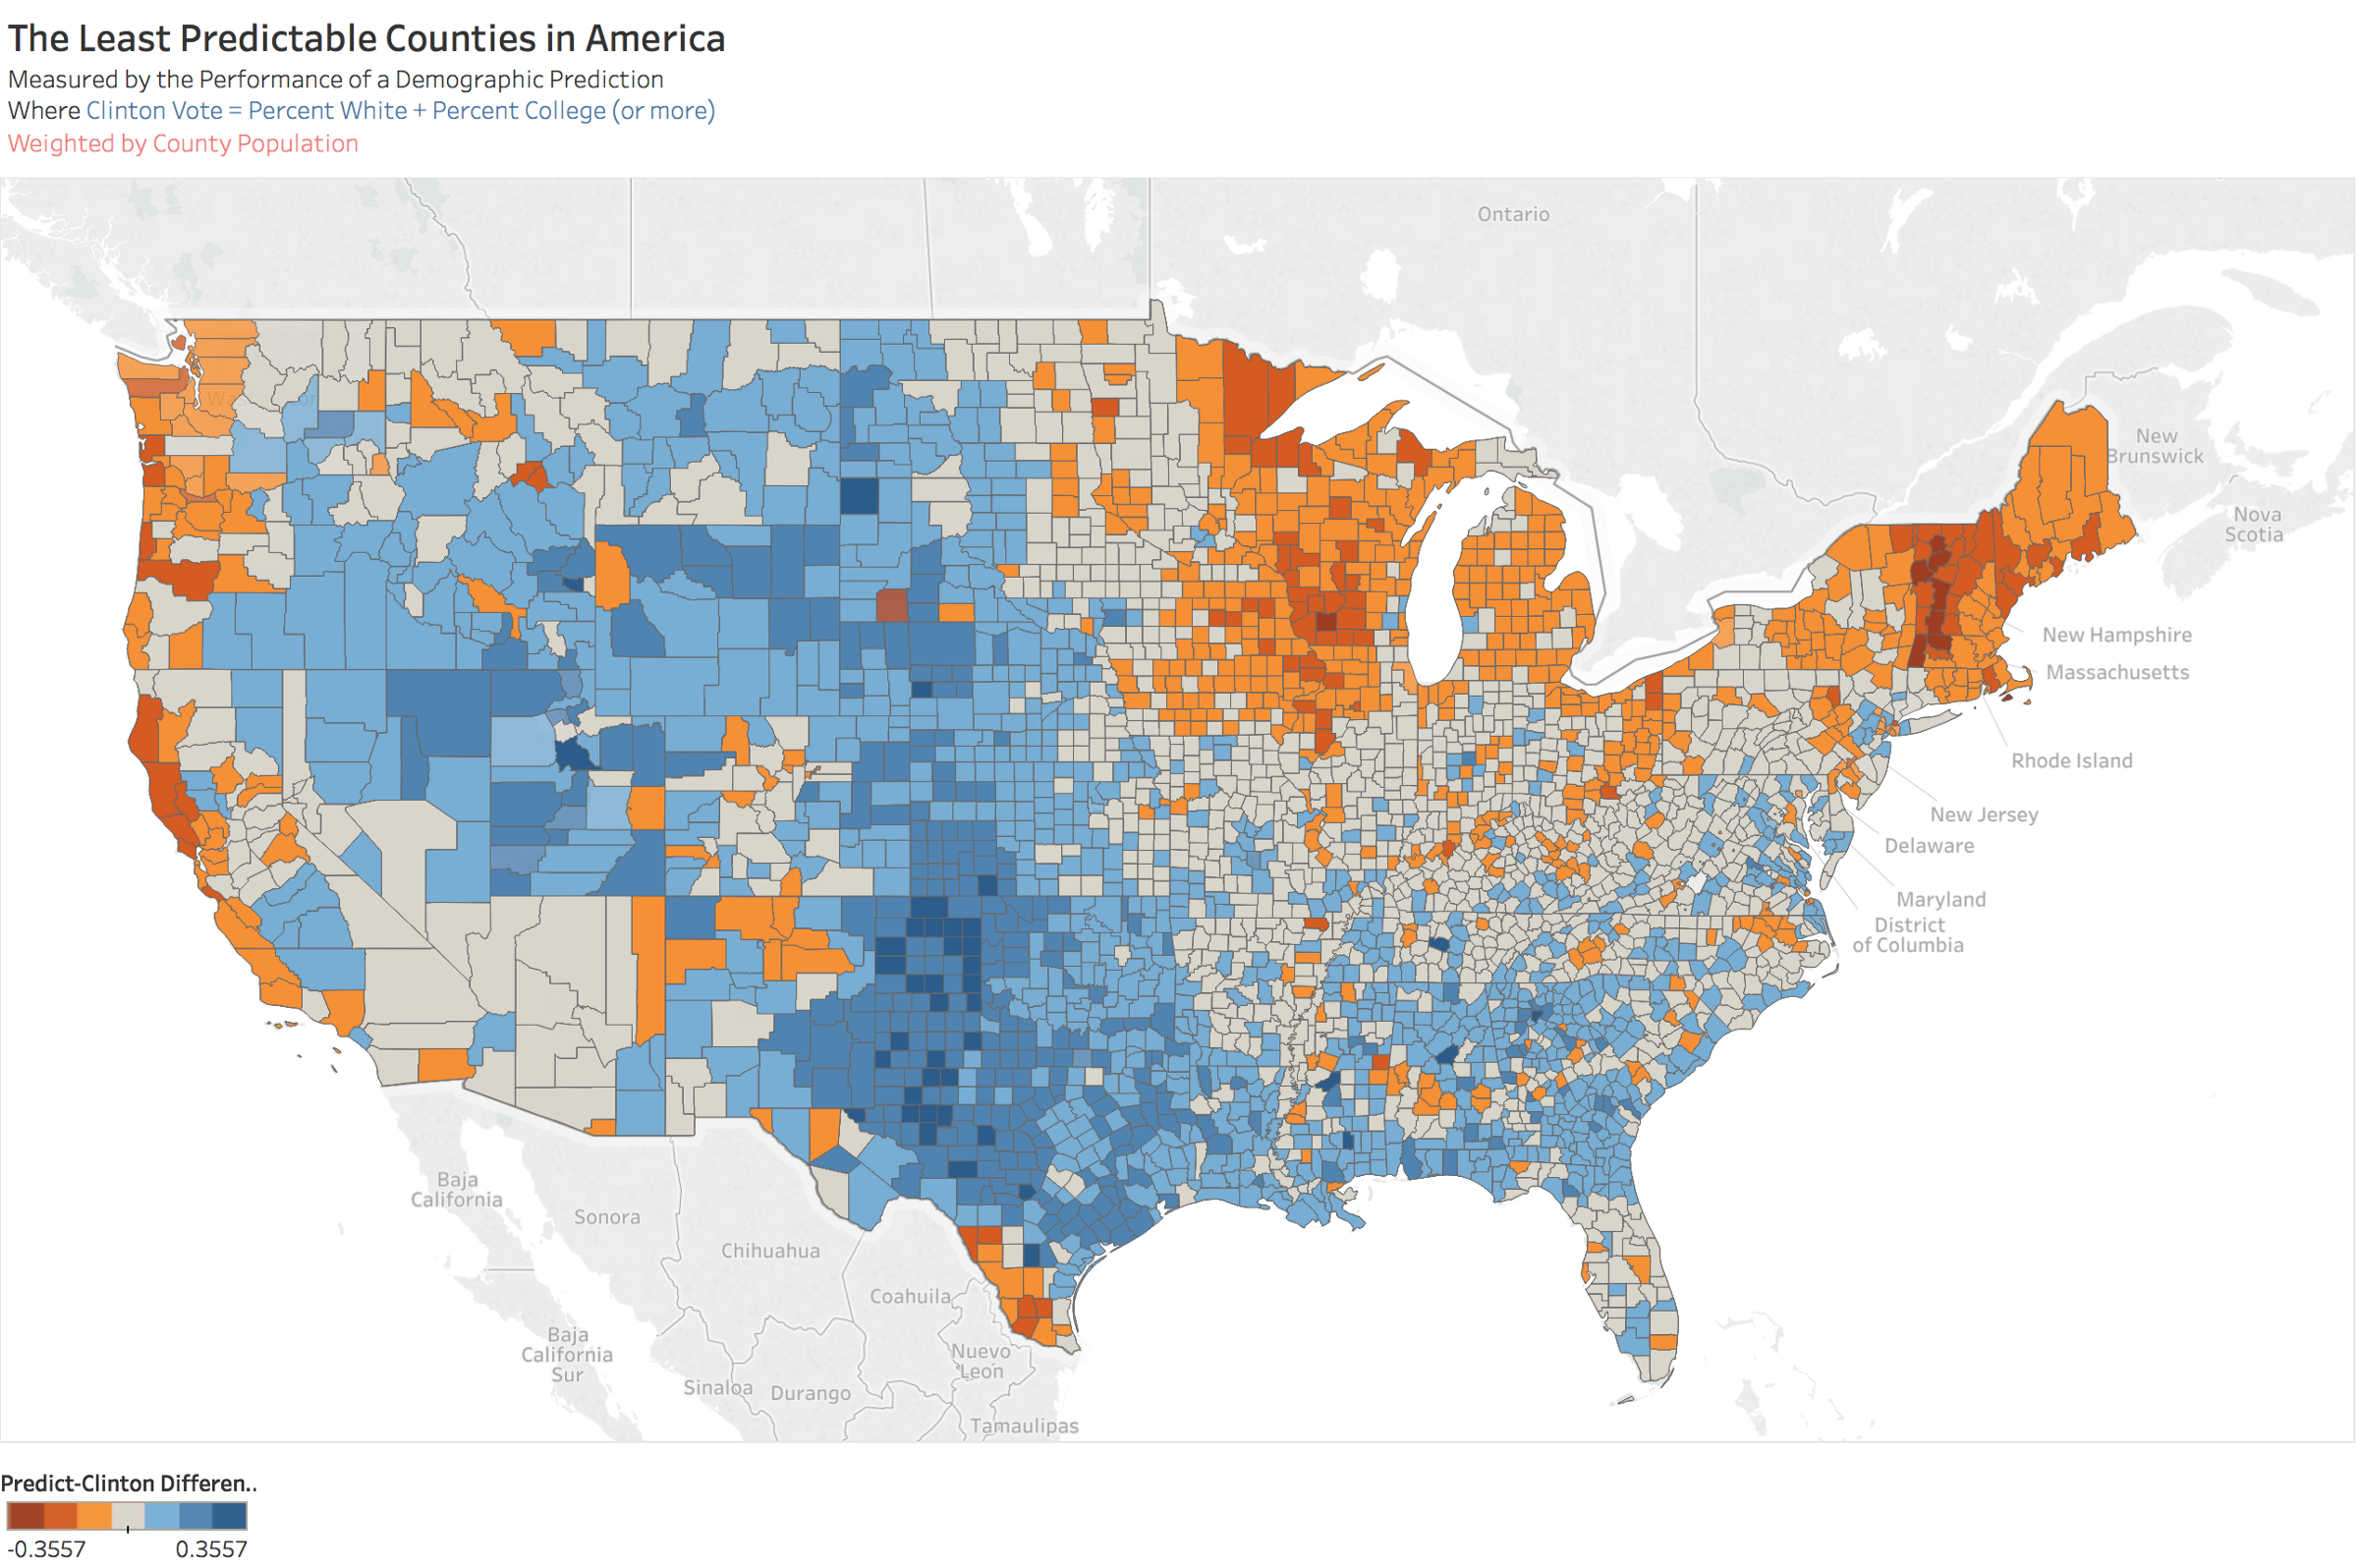 The Least Predictable Counties in the United States